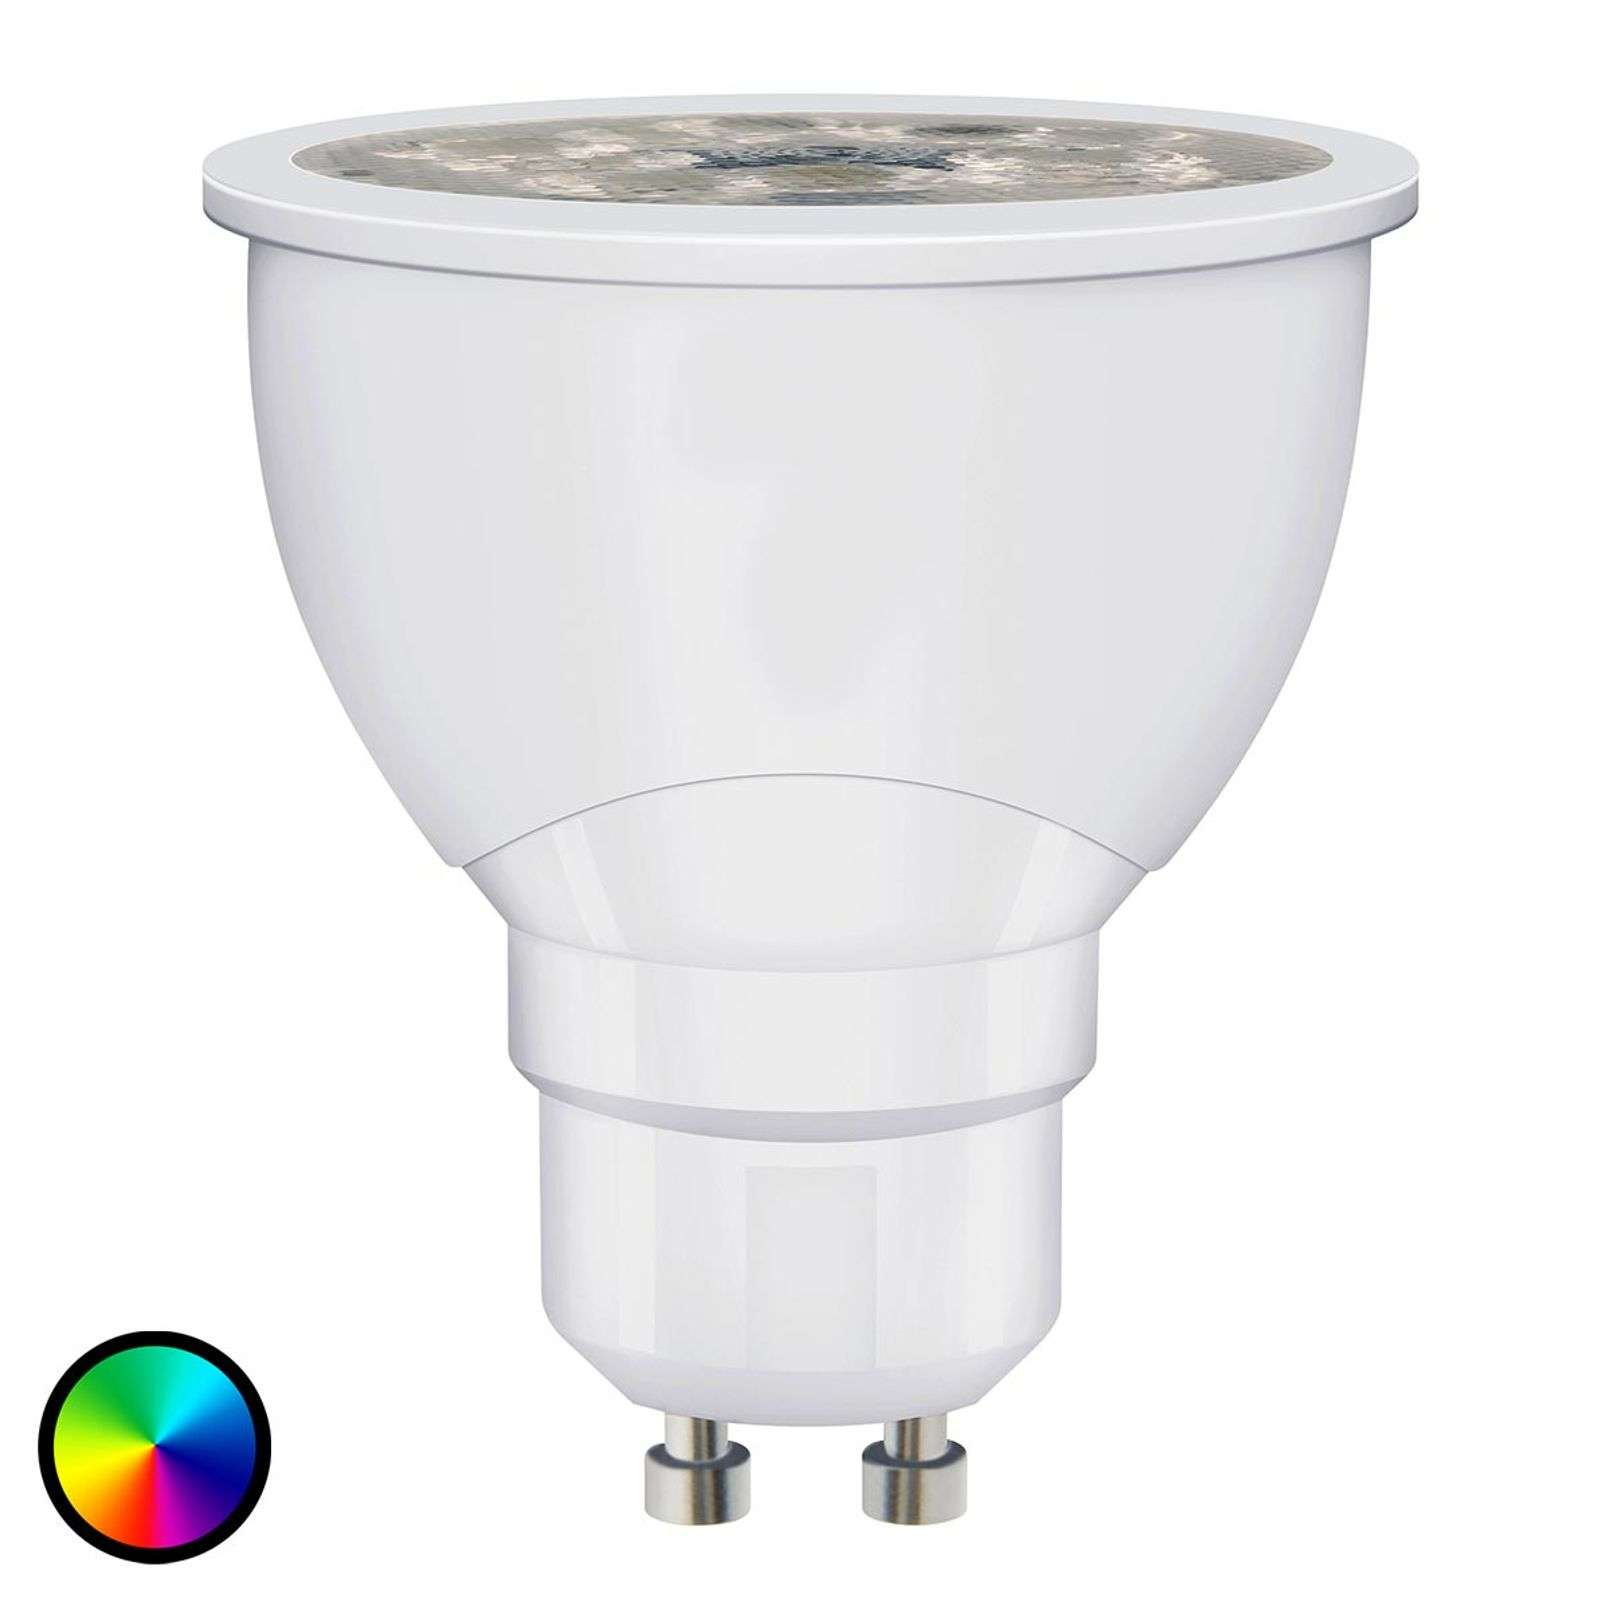 SMART+ LED GU10 6W, RGBW, 300lm, dimmerabile